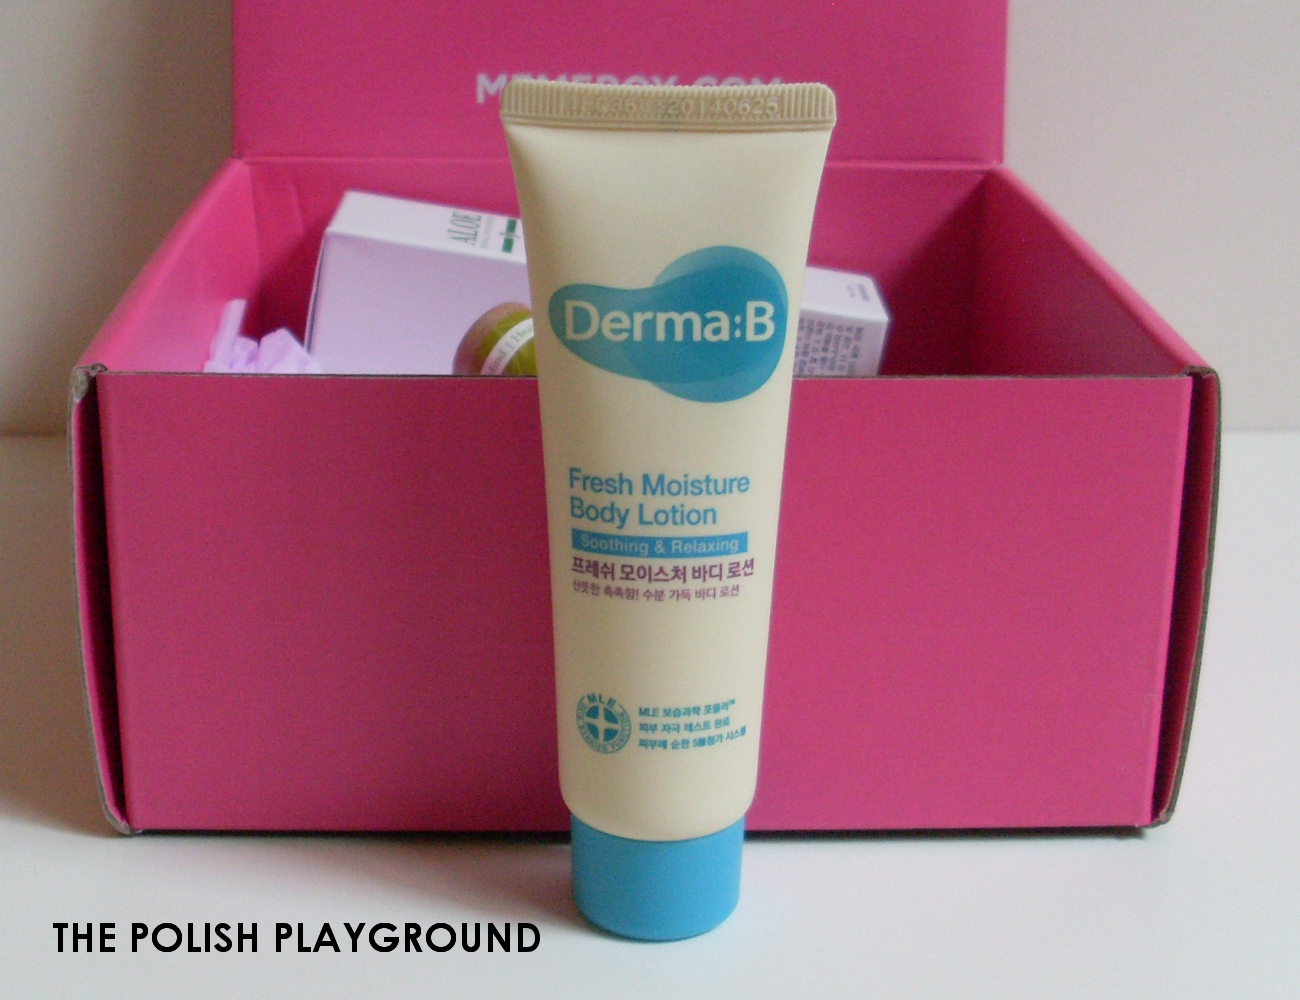 Memebox Special #64 Green Food Cosmetics Unboxing - DermaB Fresh Moisture Body Lotion